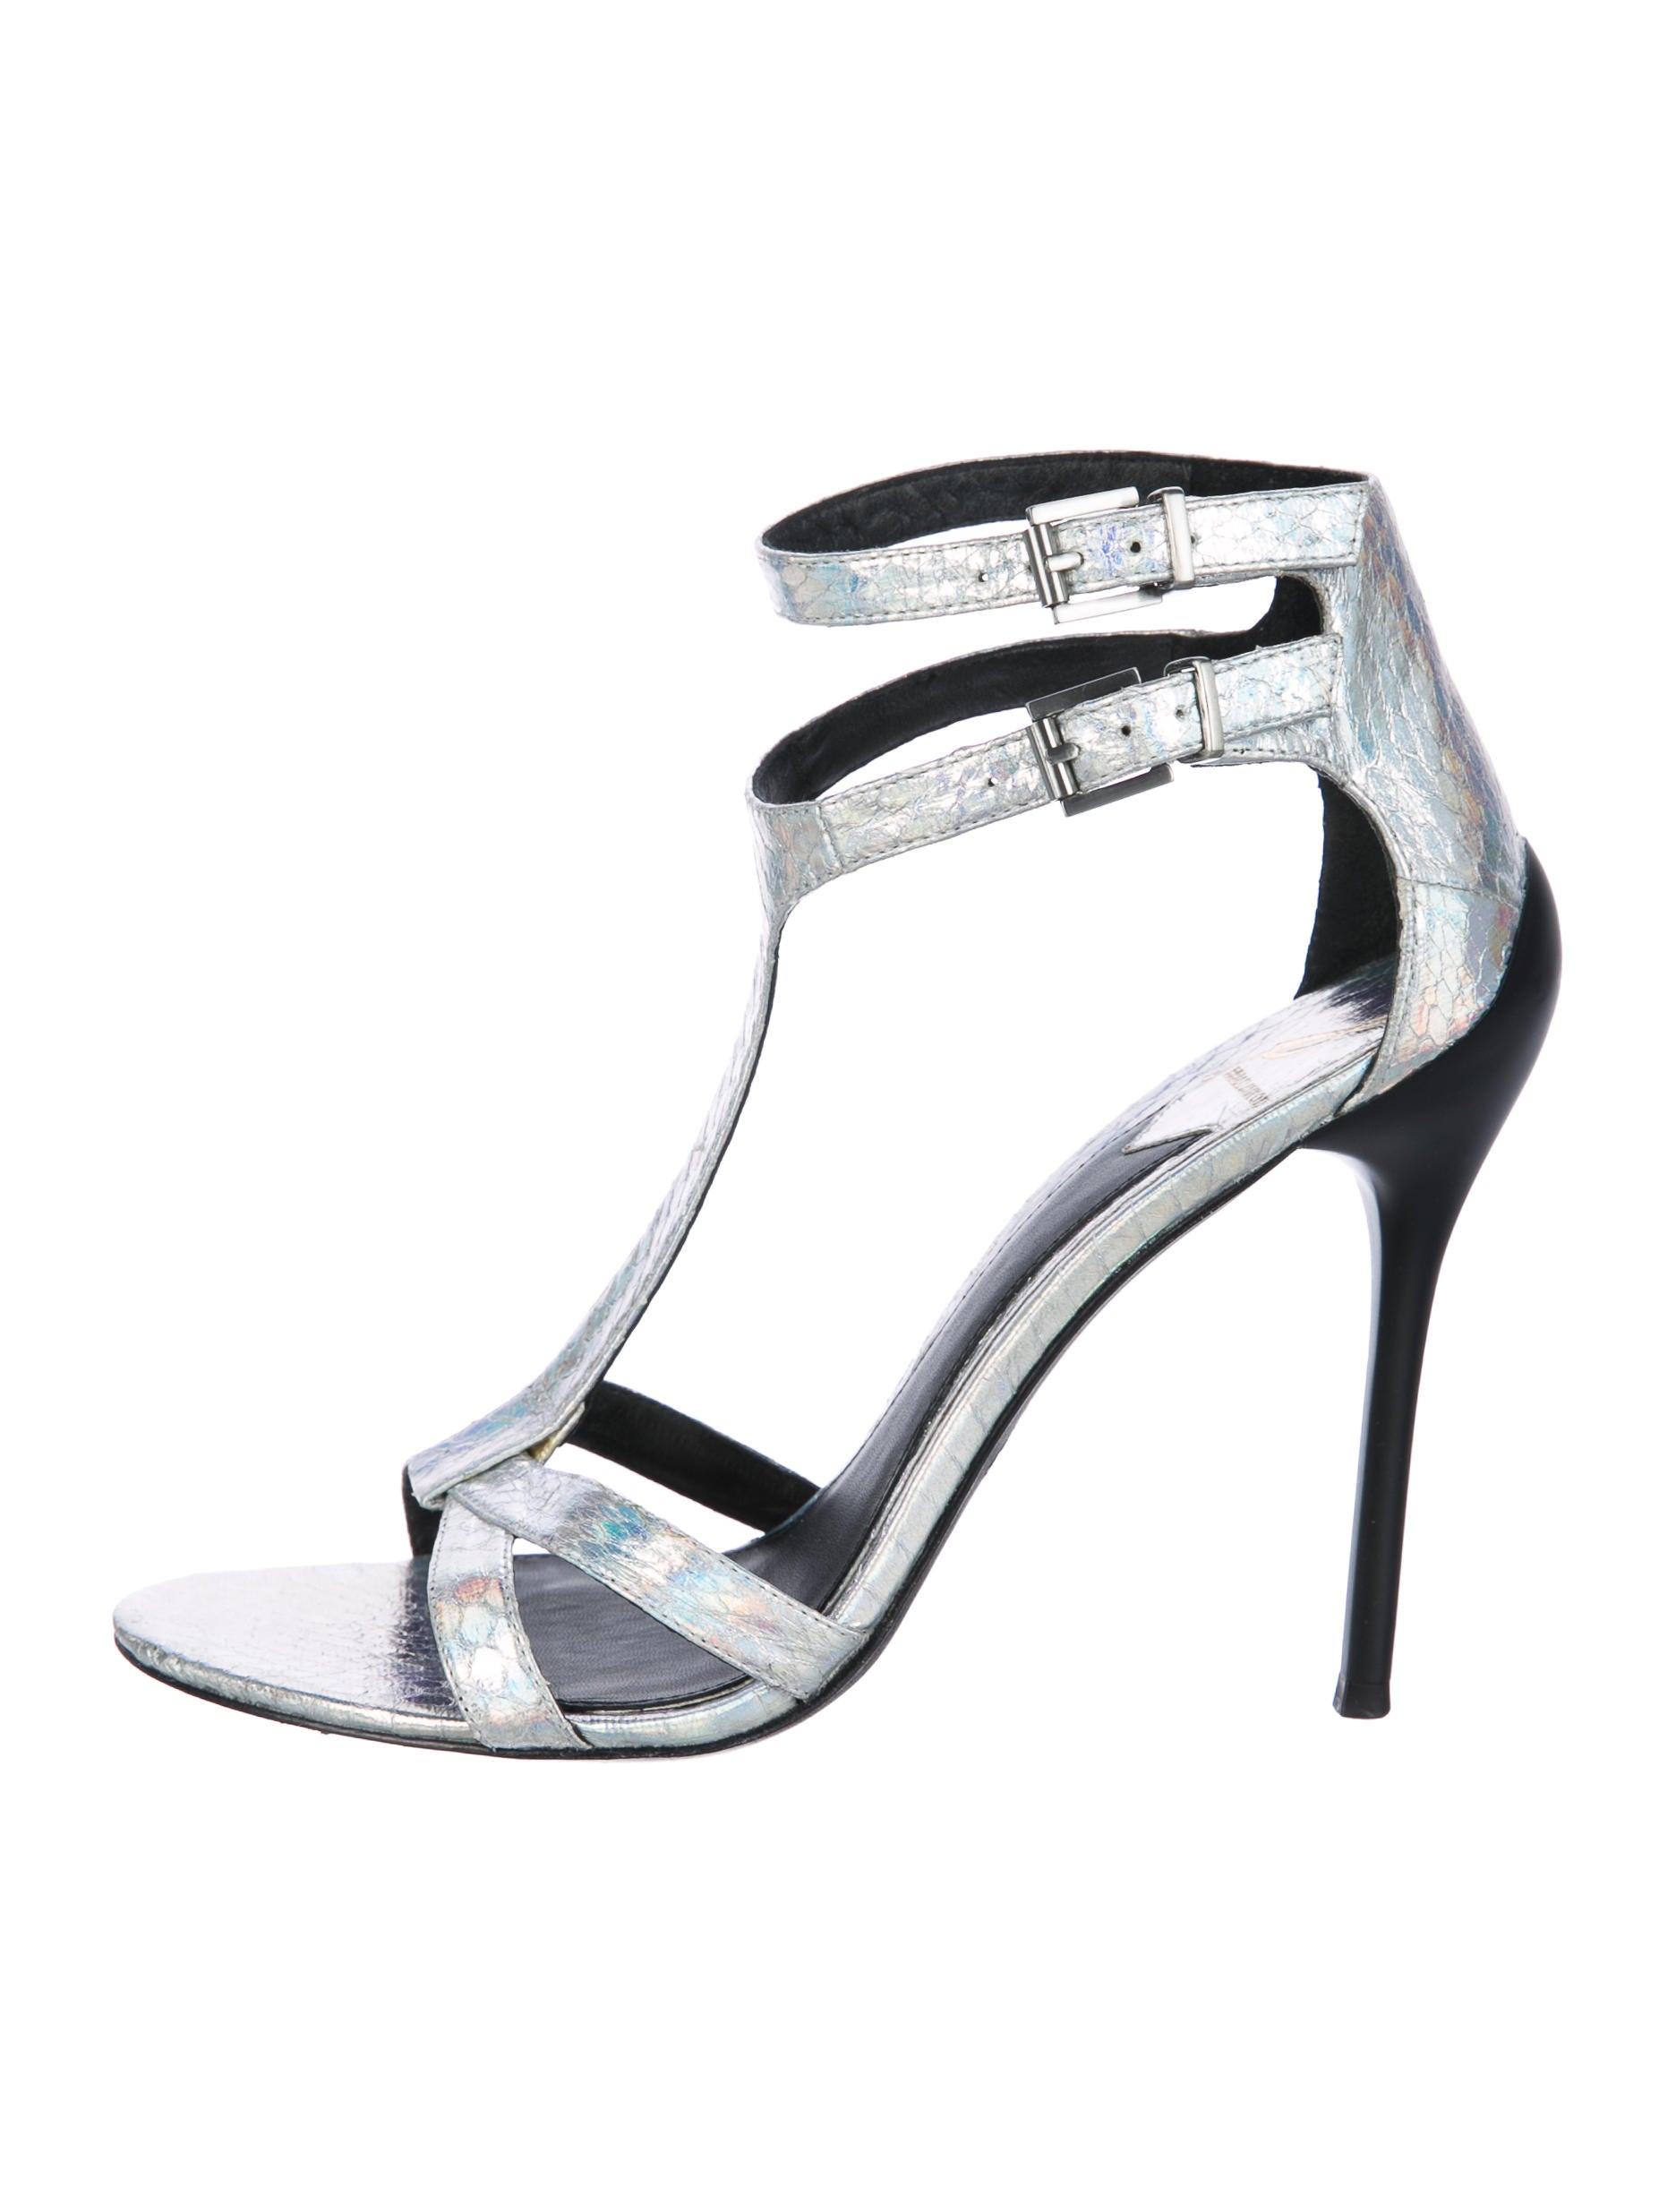 B Brian Atwood Laetitia Snakeskin Sandals cheap manchester great sale cheap order popular online clearance explore L8sJO9Nl9